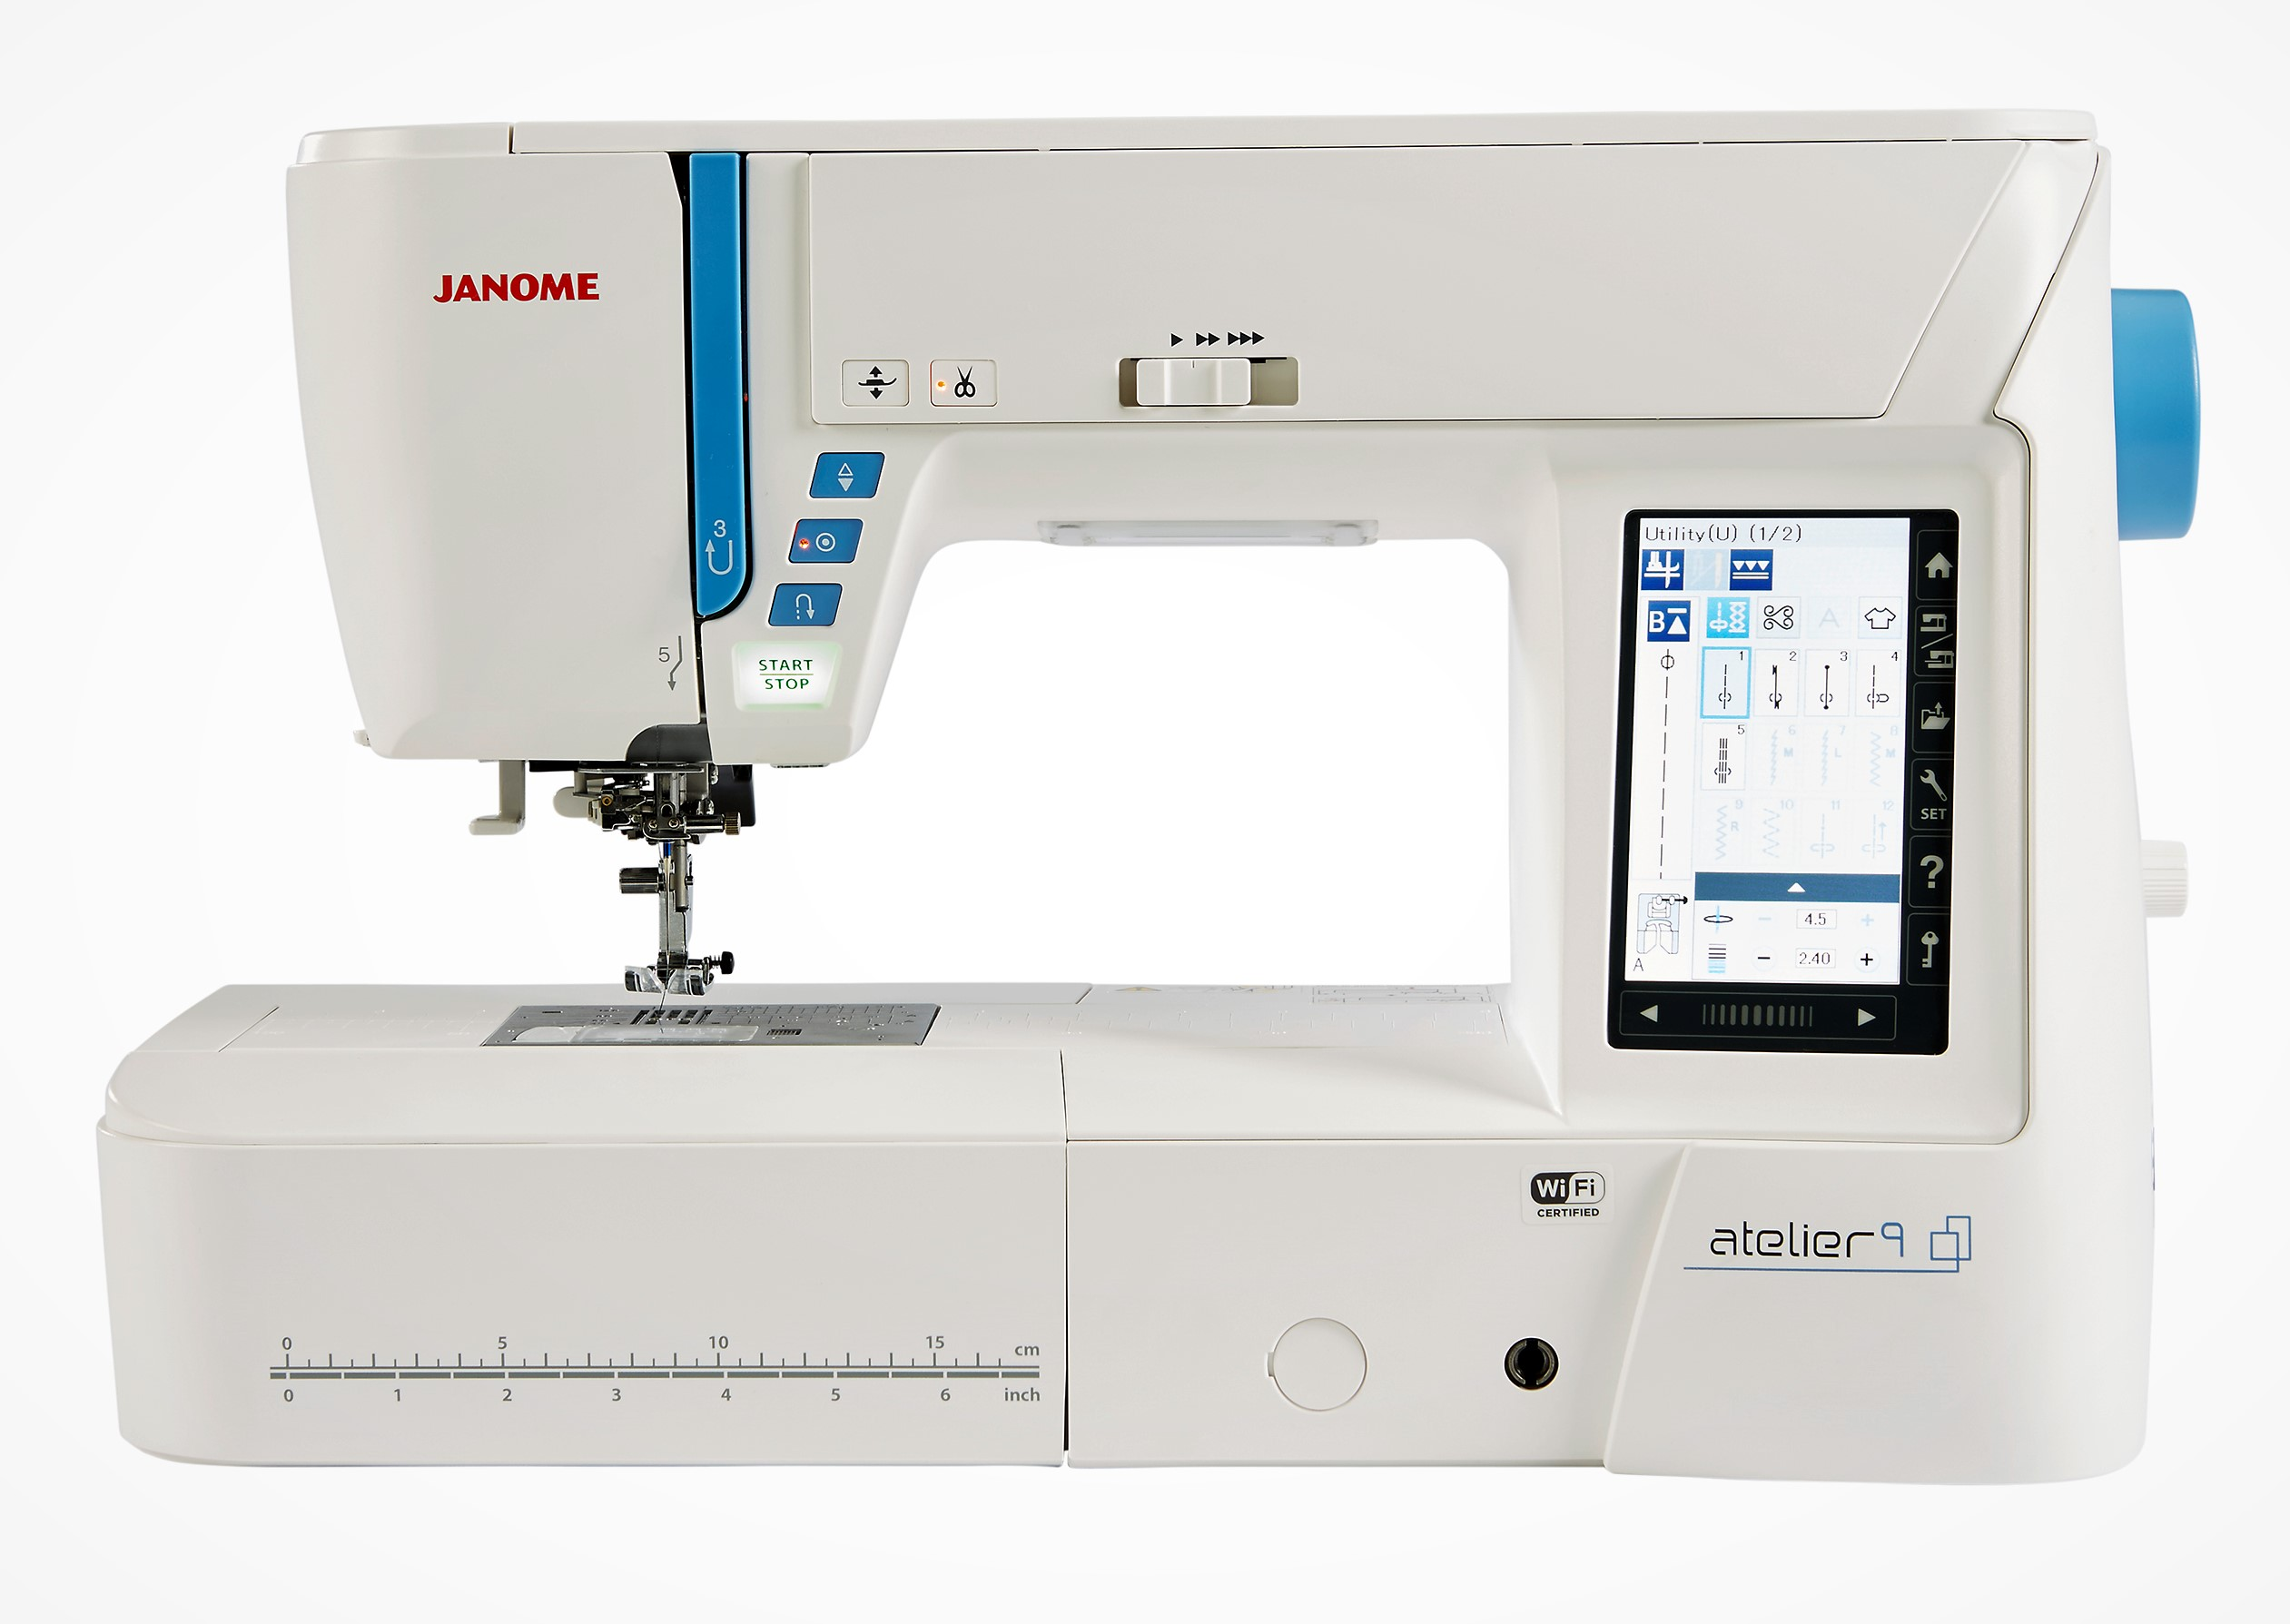 Janome Embroidery Sew Compare Sewing Shop